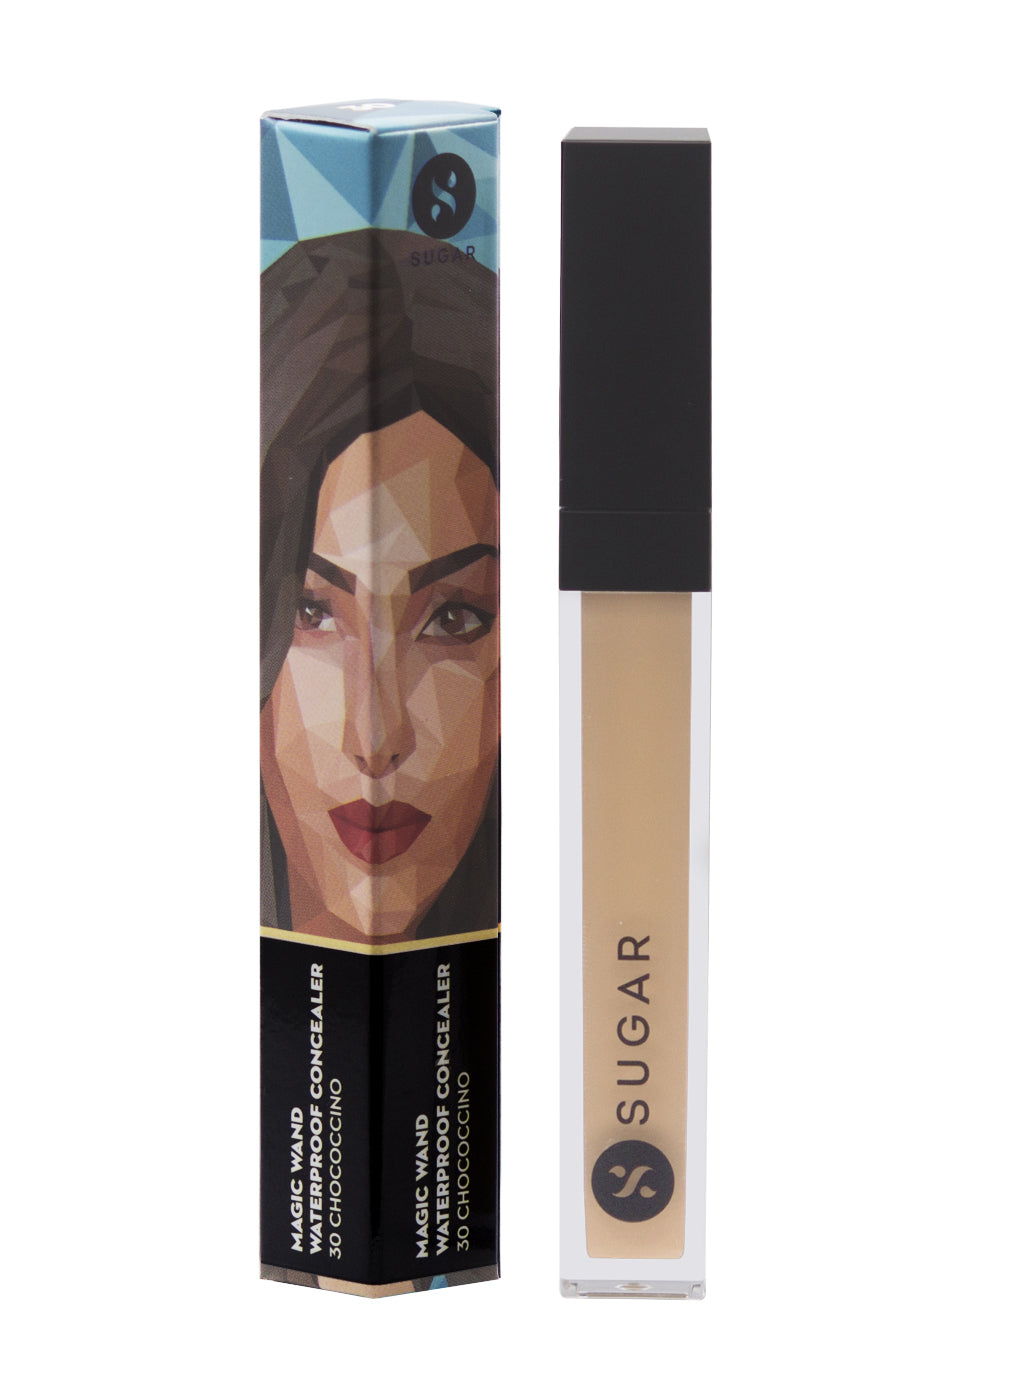 SUGAR Magic Wand Waterproof Concealer - 30 Chococcino (Medium, Warm Undertone)